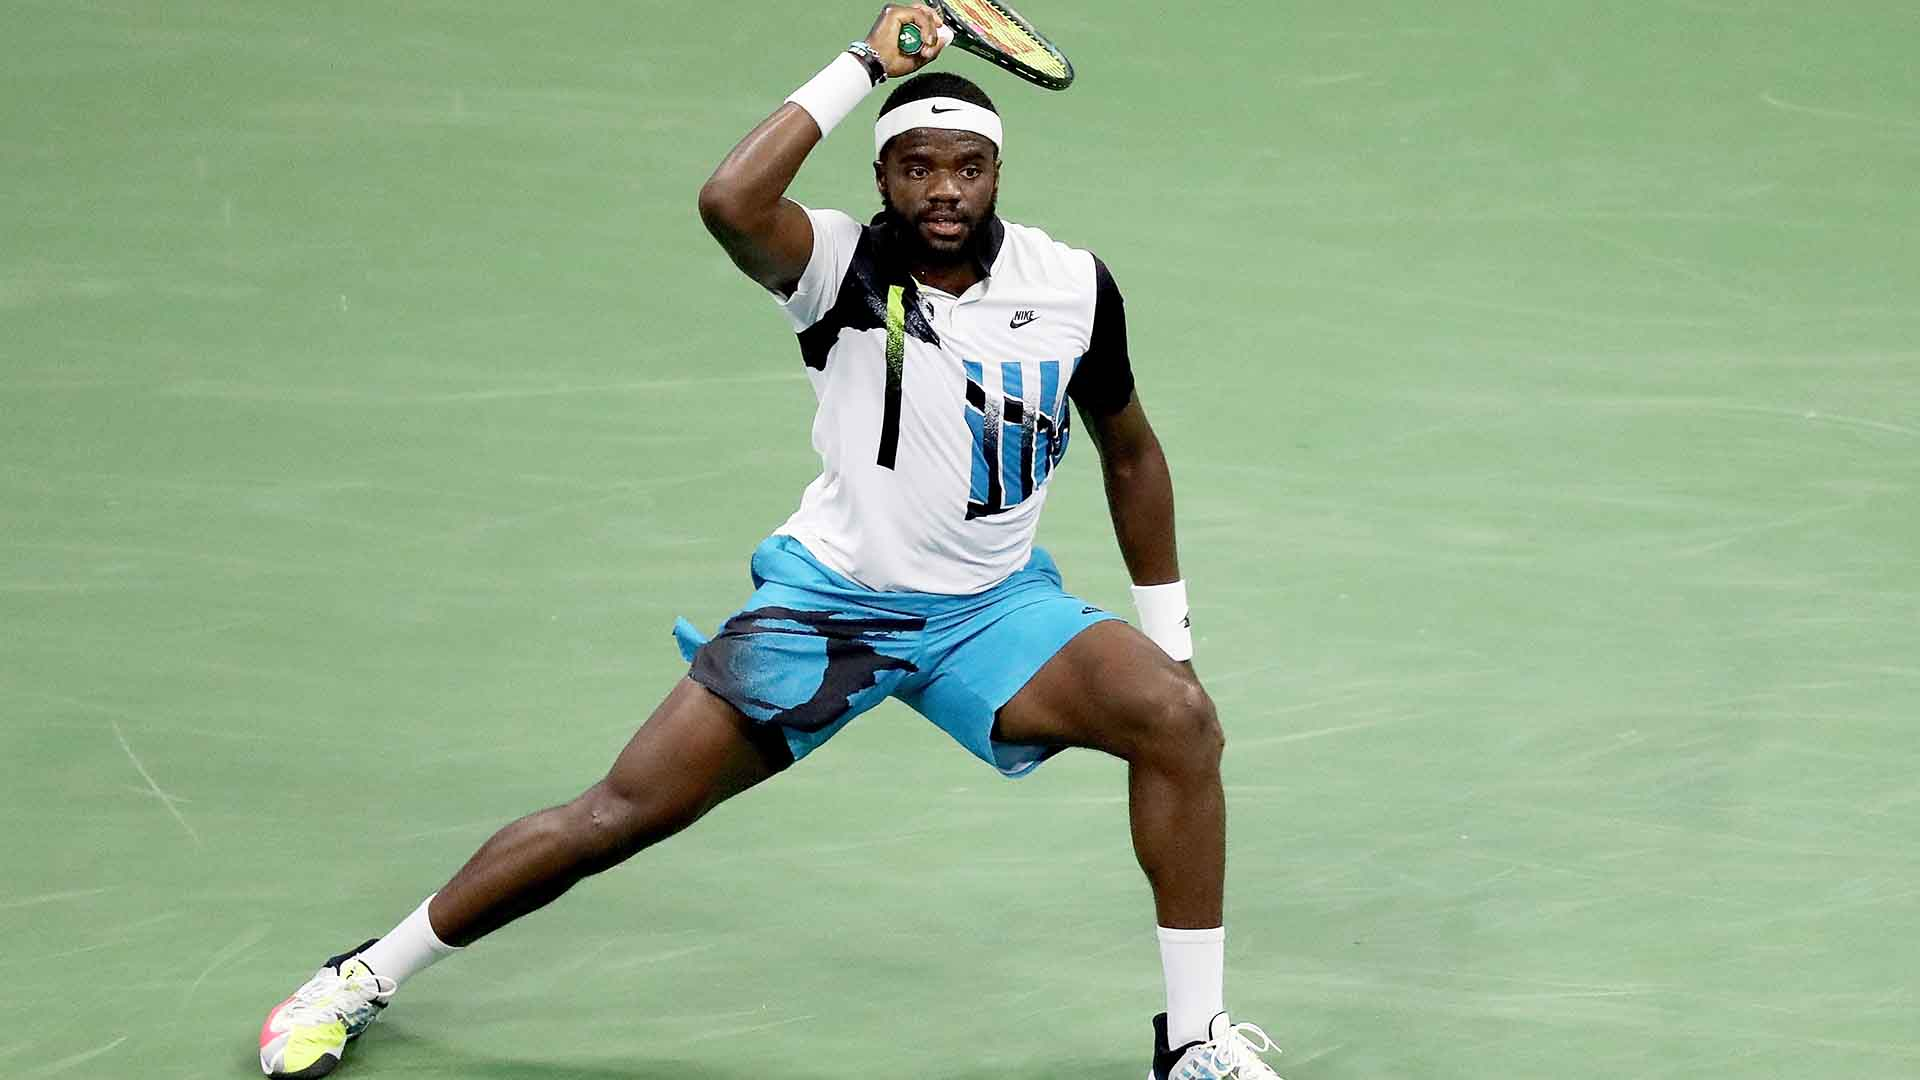 Frances Tiafoe reached the US Open fourth round for the first time in 2020.